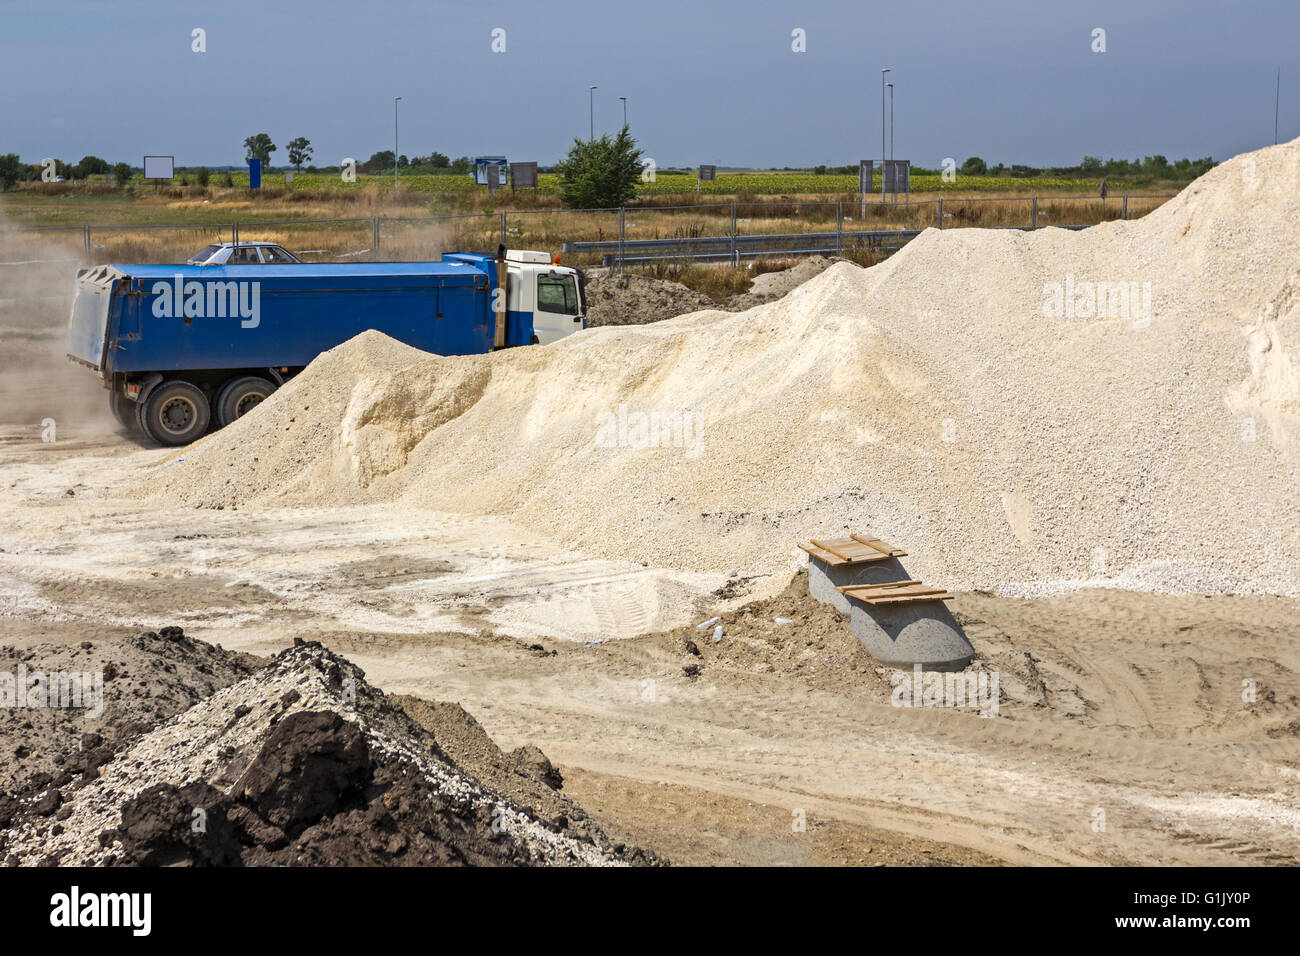 Huge piles of gravel at construction site under bright blue sky. - Stock Image